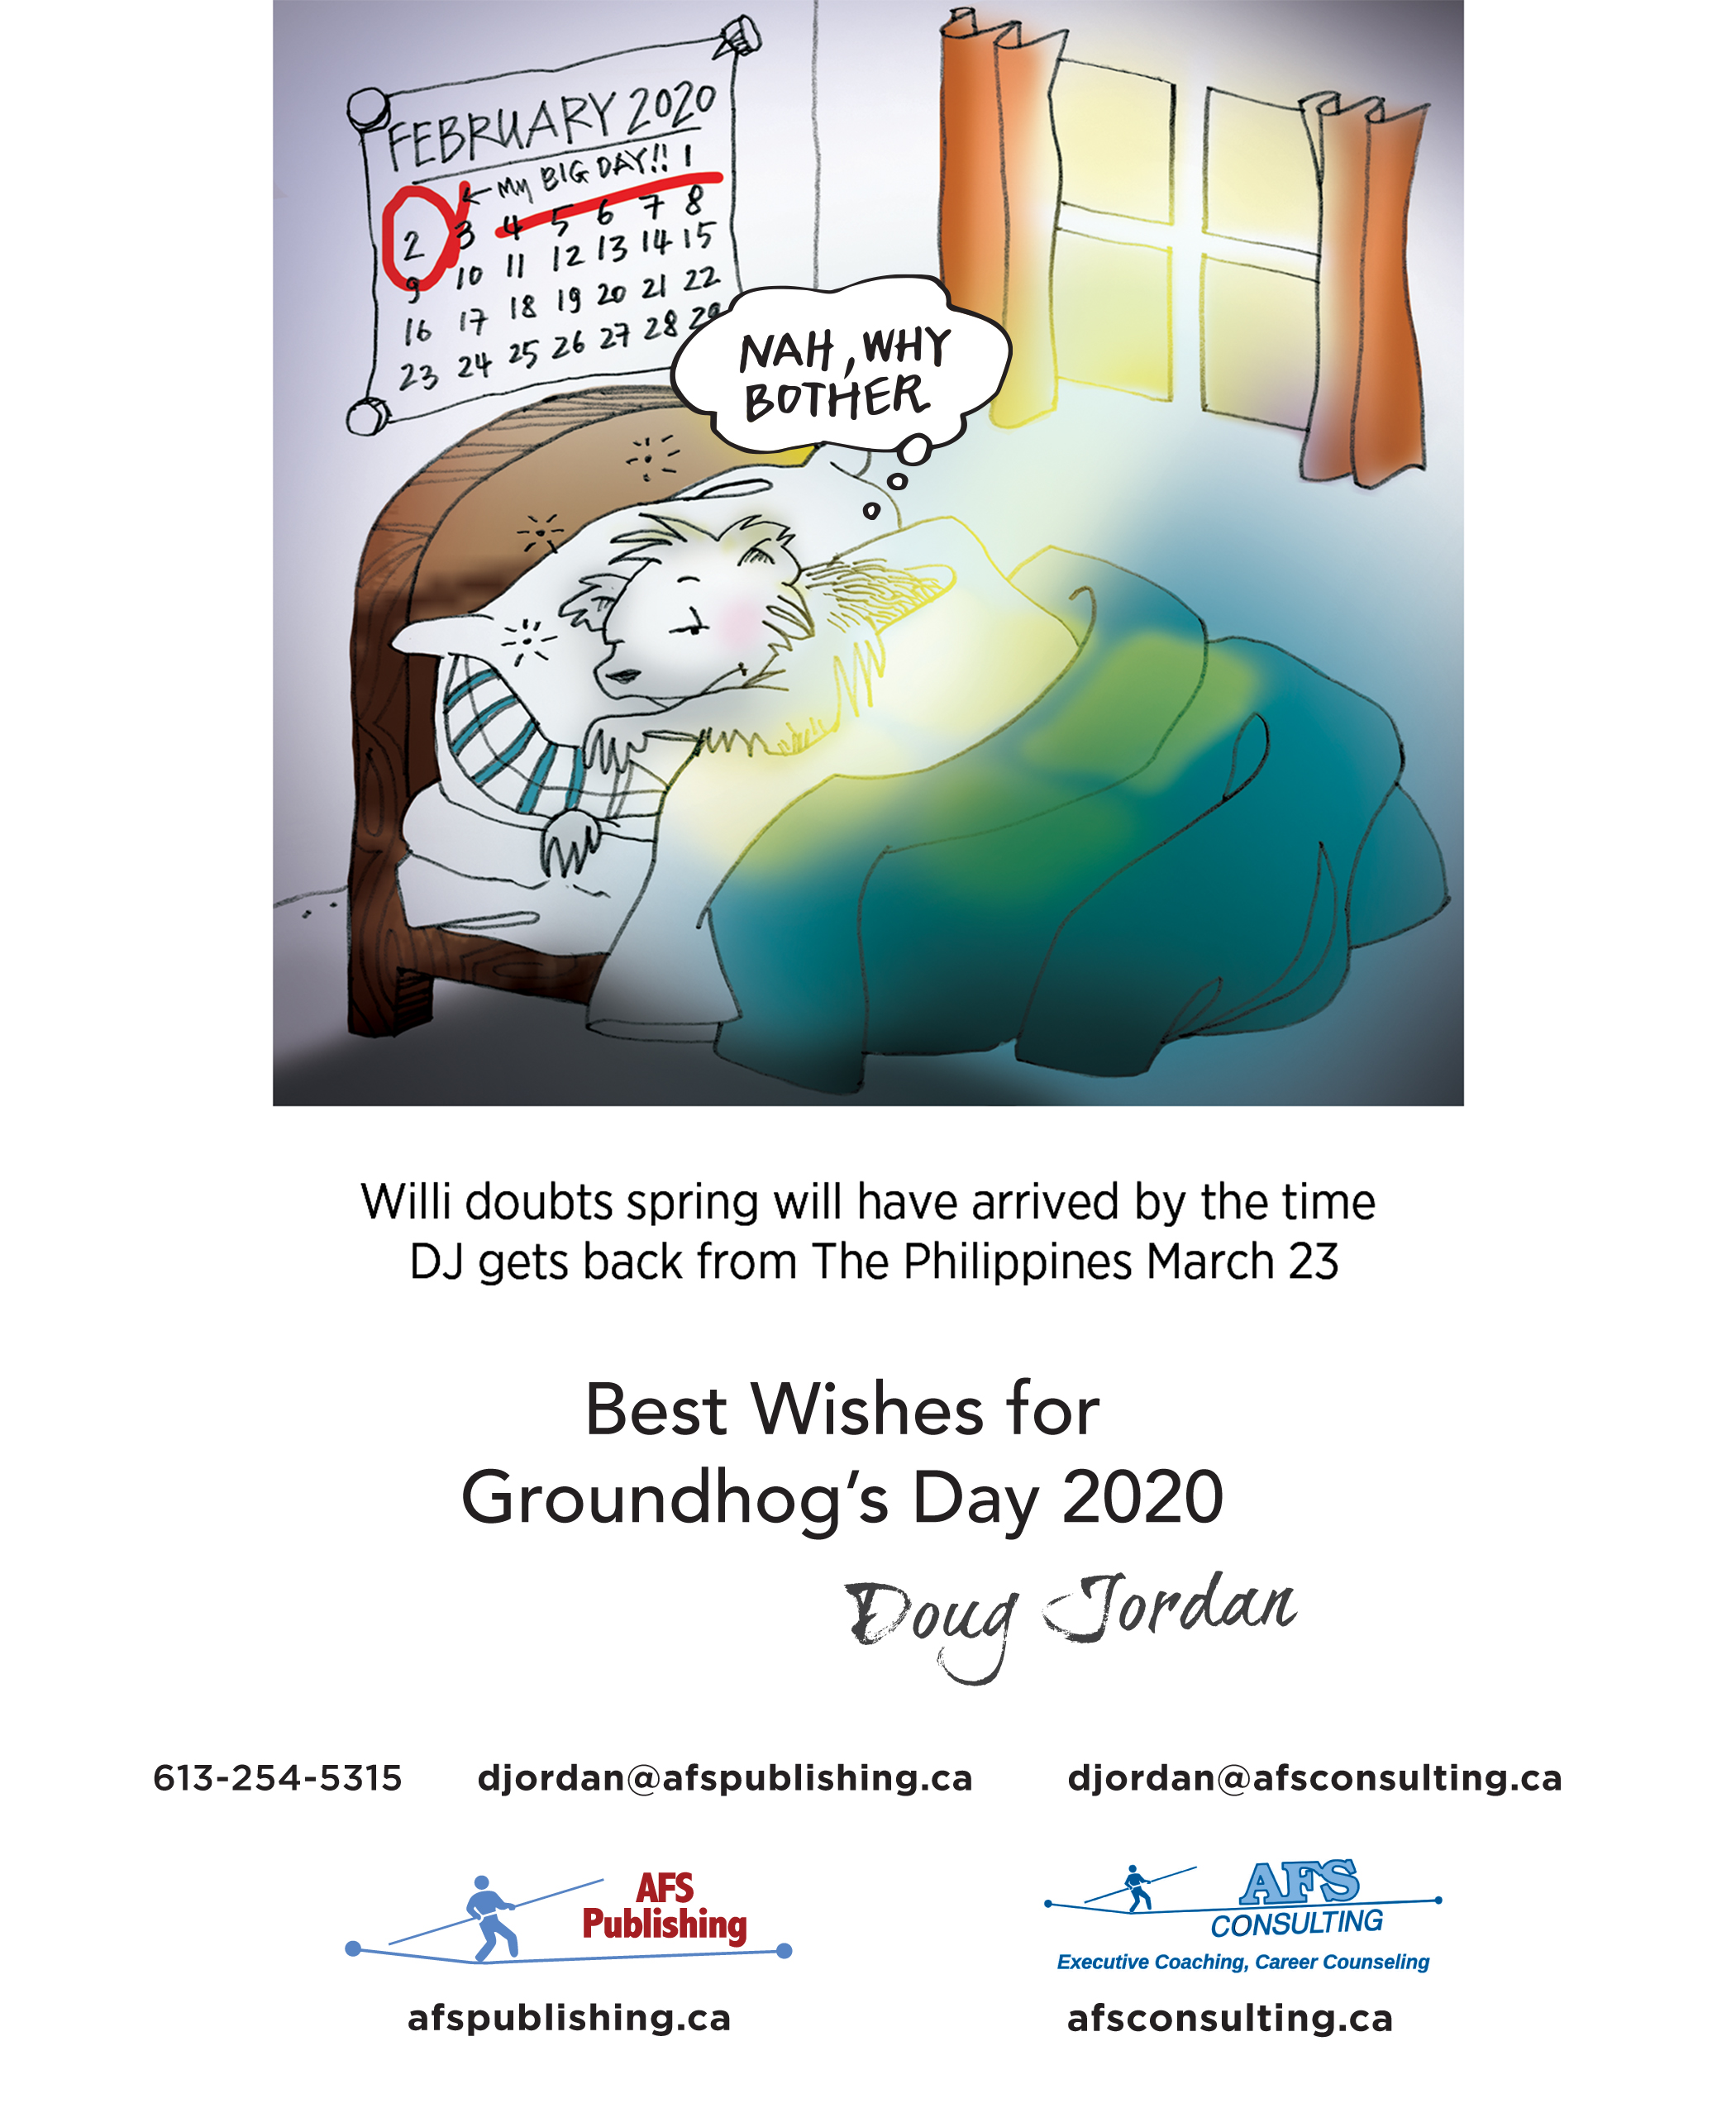 Off The Wall – Groundhog Day 2020